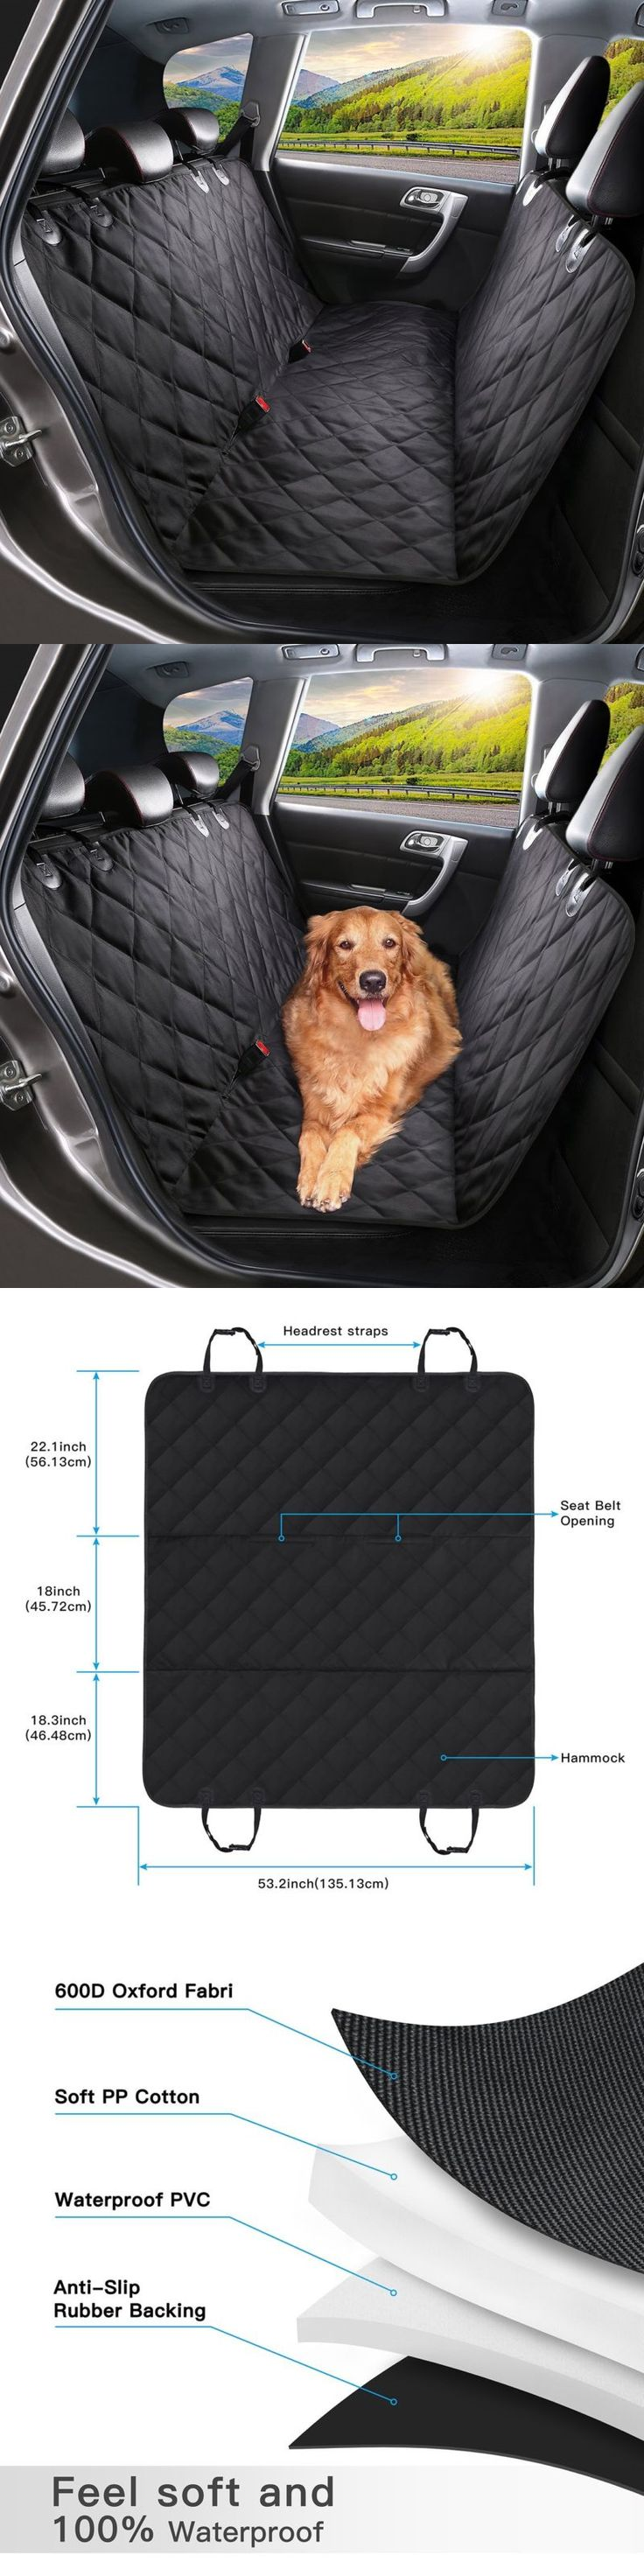 Car Seat Covers 117426: Pet Seat Cover Dog Car Seat Covers Nonslip Backing Waterproof Scratch Proof Cat -> BUY IT NOW ONLY: $36.5 on eBay!